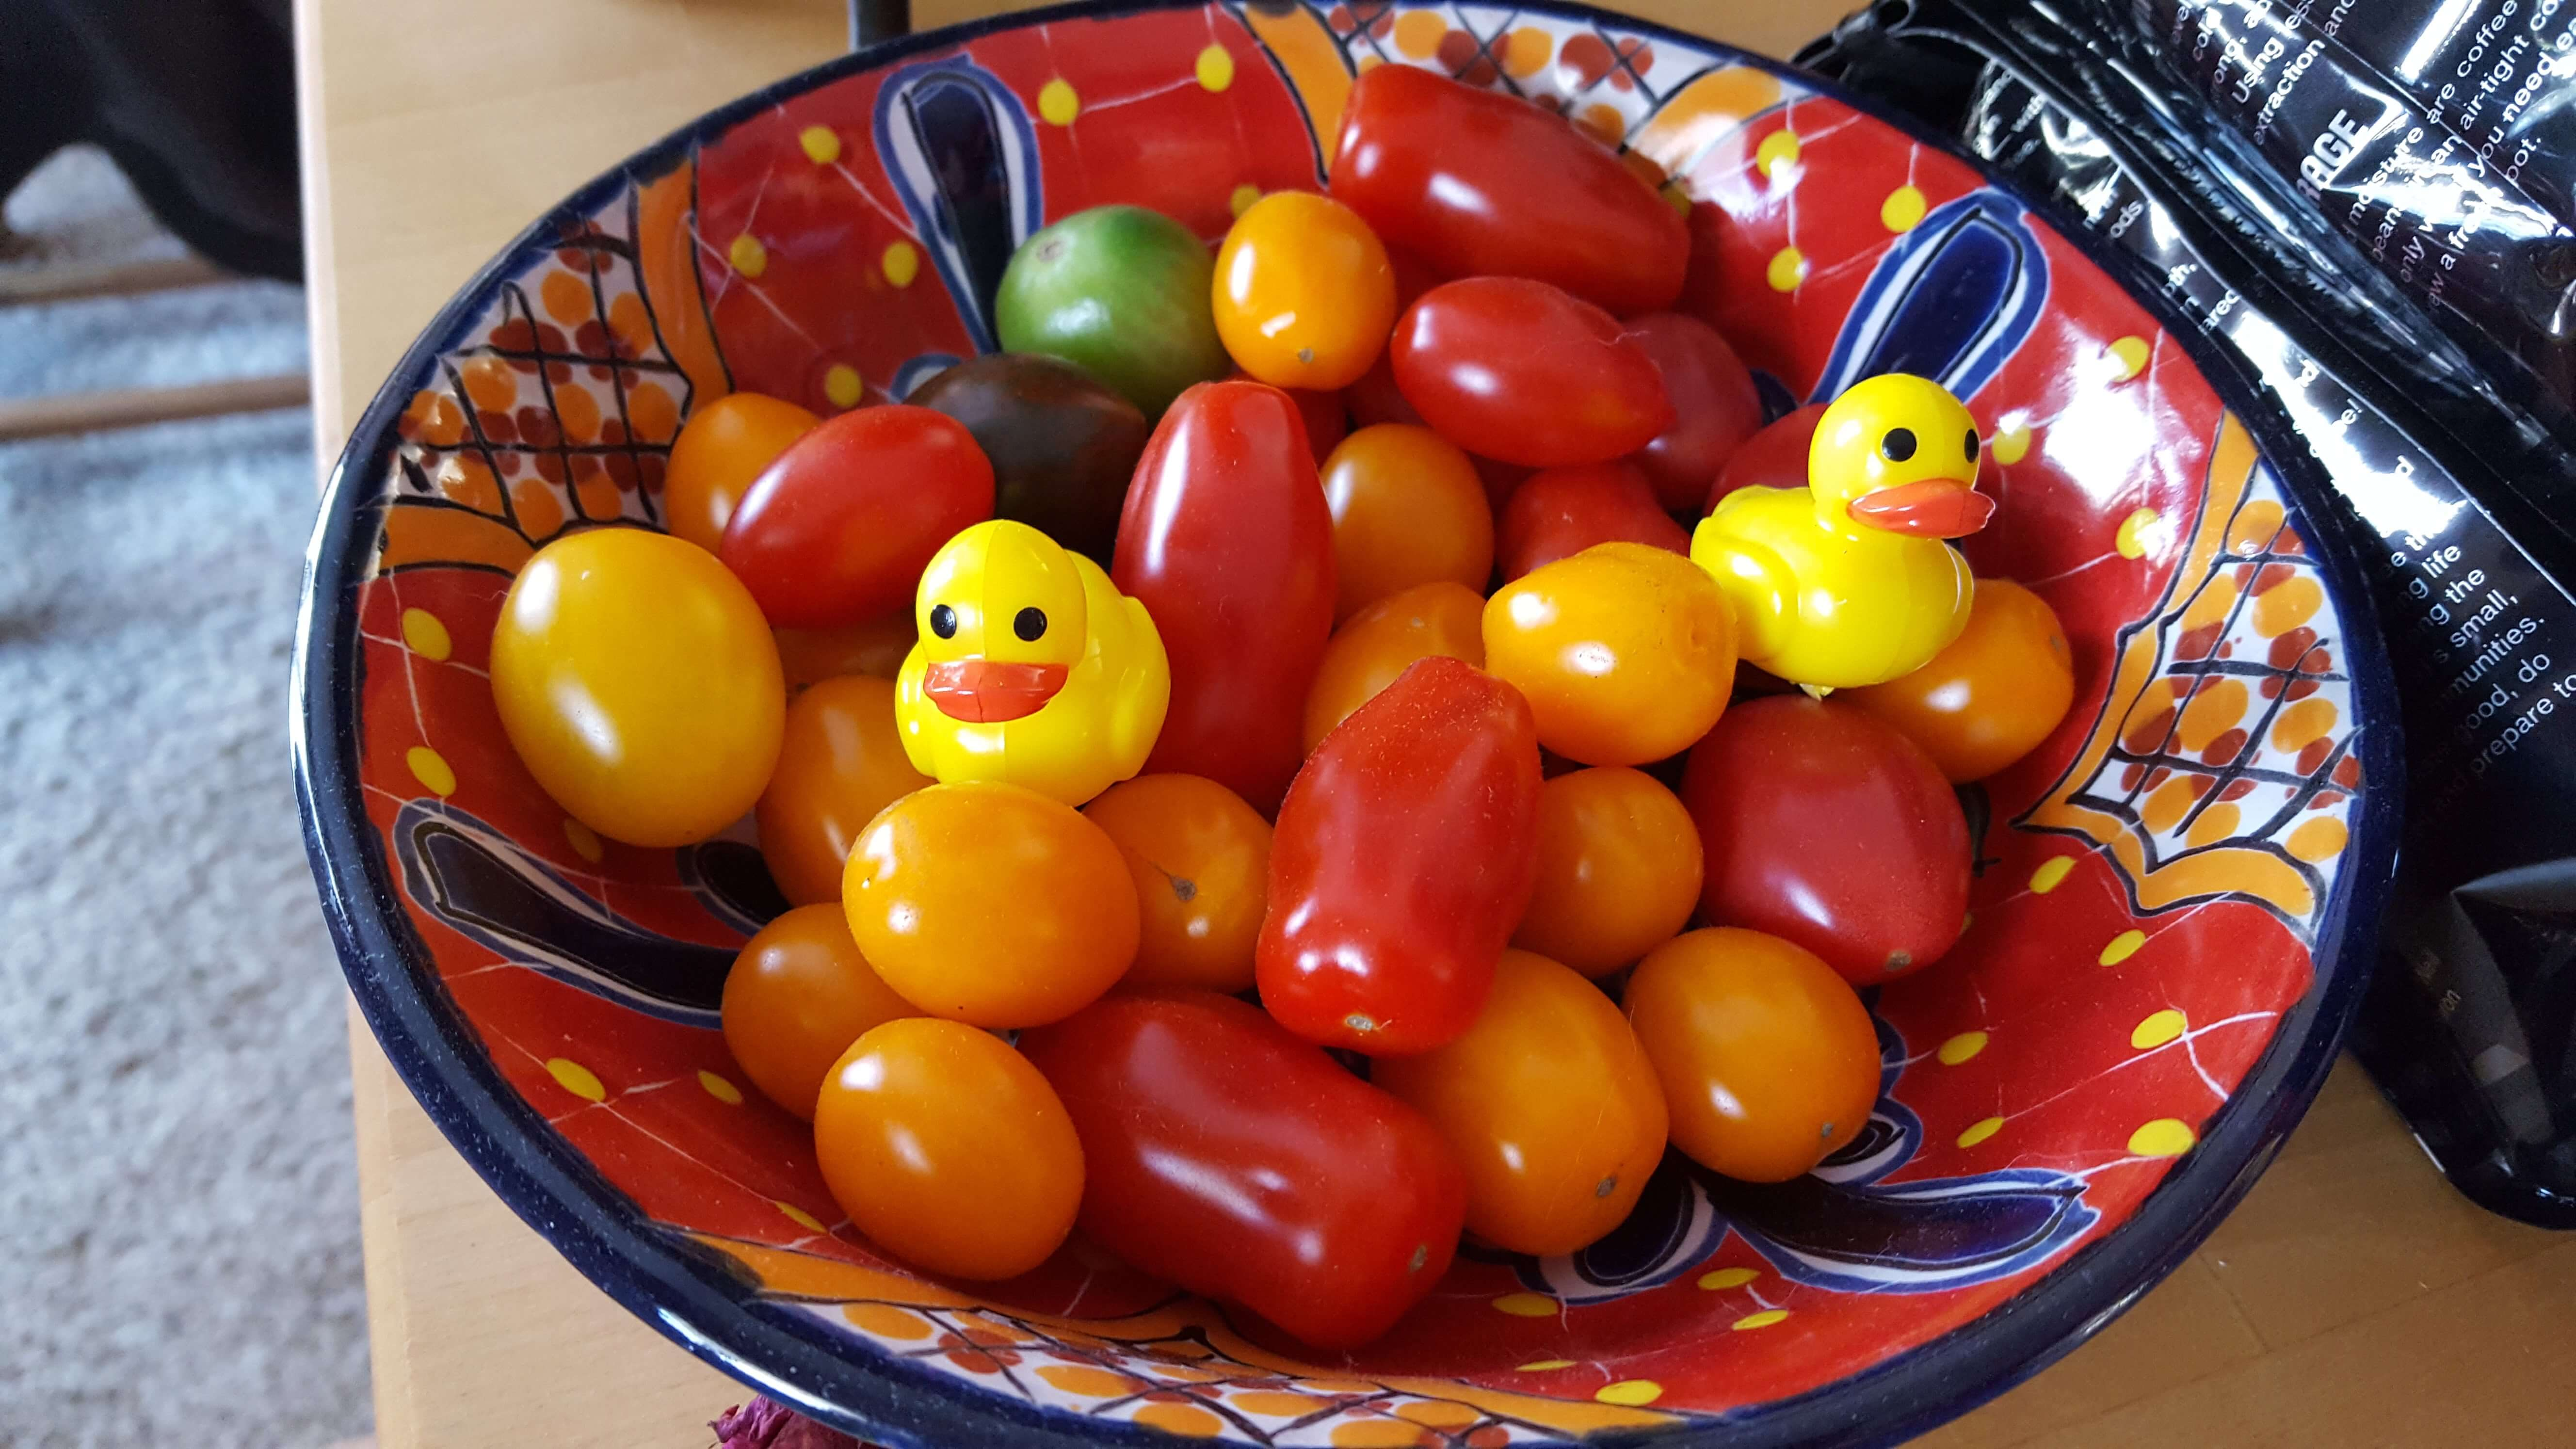 Small colorful tomatoes